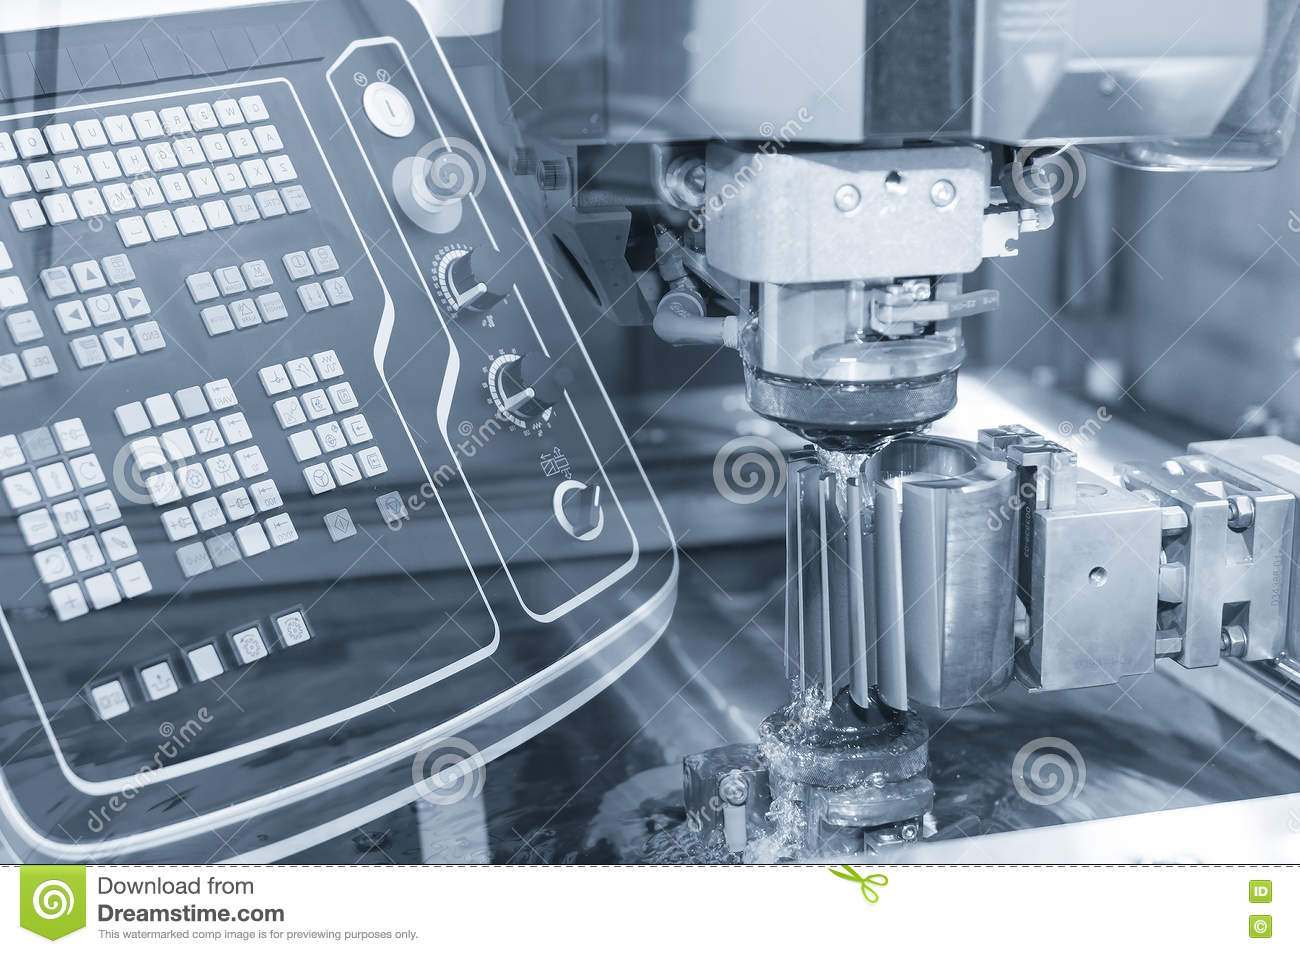 Abstract Scene Of Close-up Of The Wire - EDM CNC Machine Stock Image ...